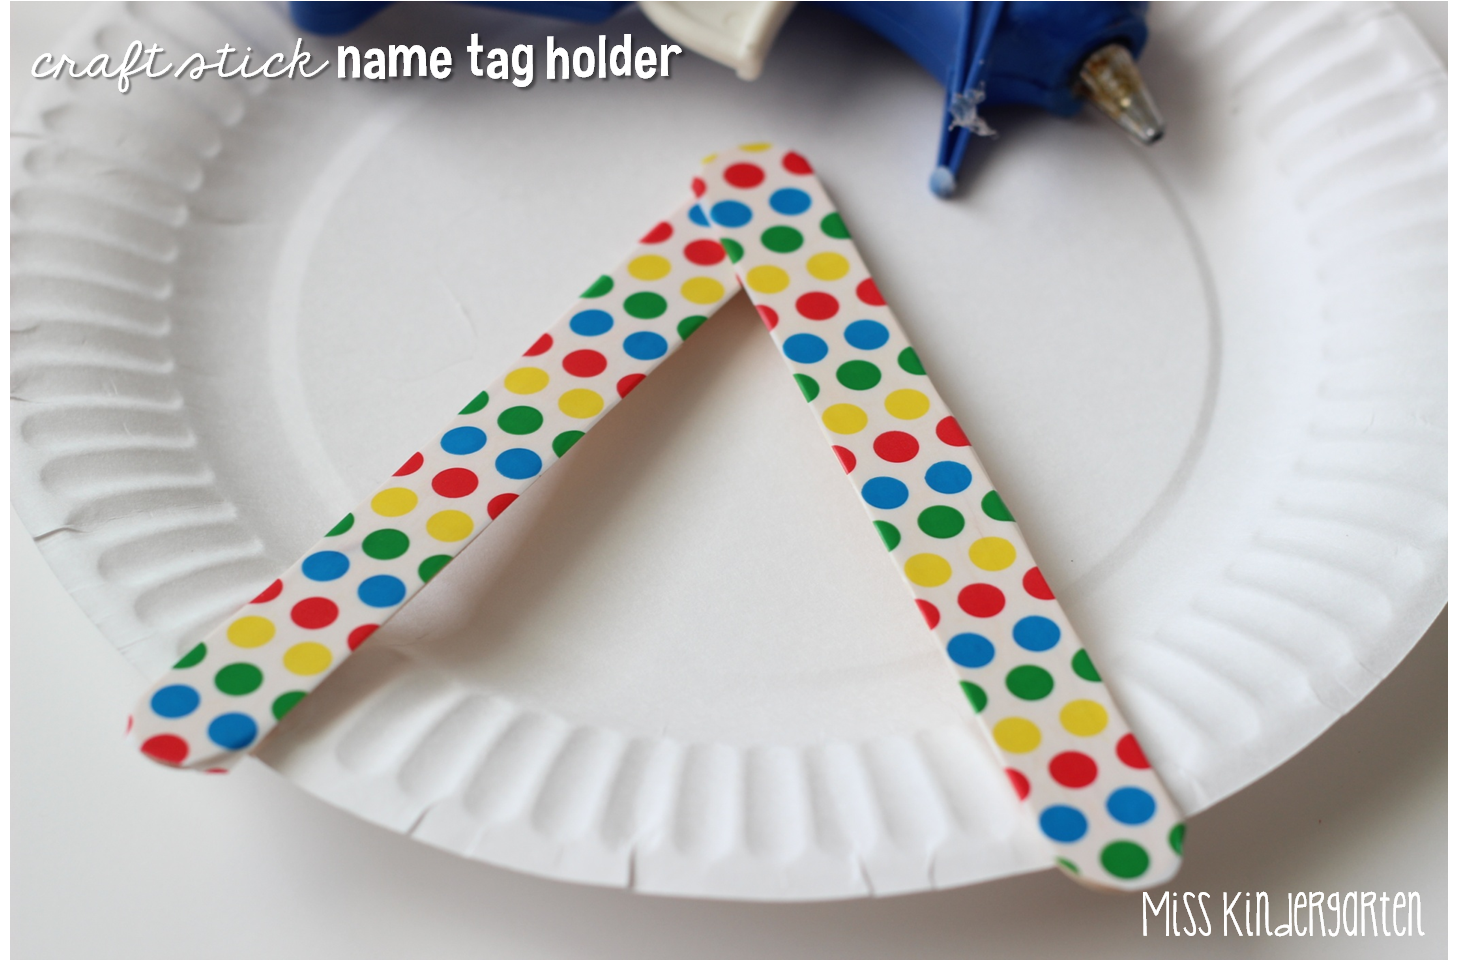 Name tag craft ideas - Lay Two Craft Sticks Down Like An Uppercase A And Hot Glue The Top Pieces Together